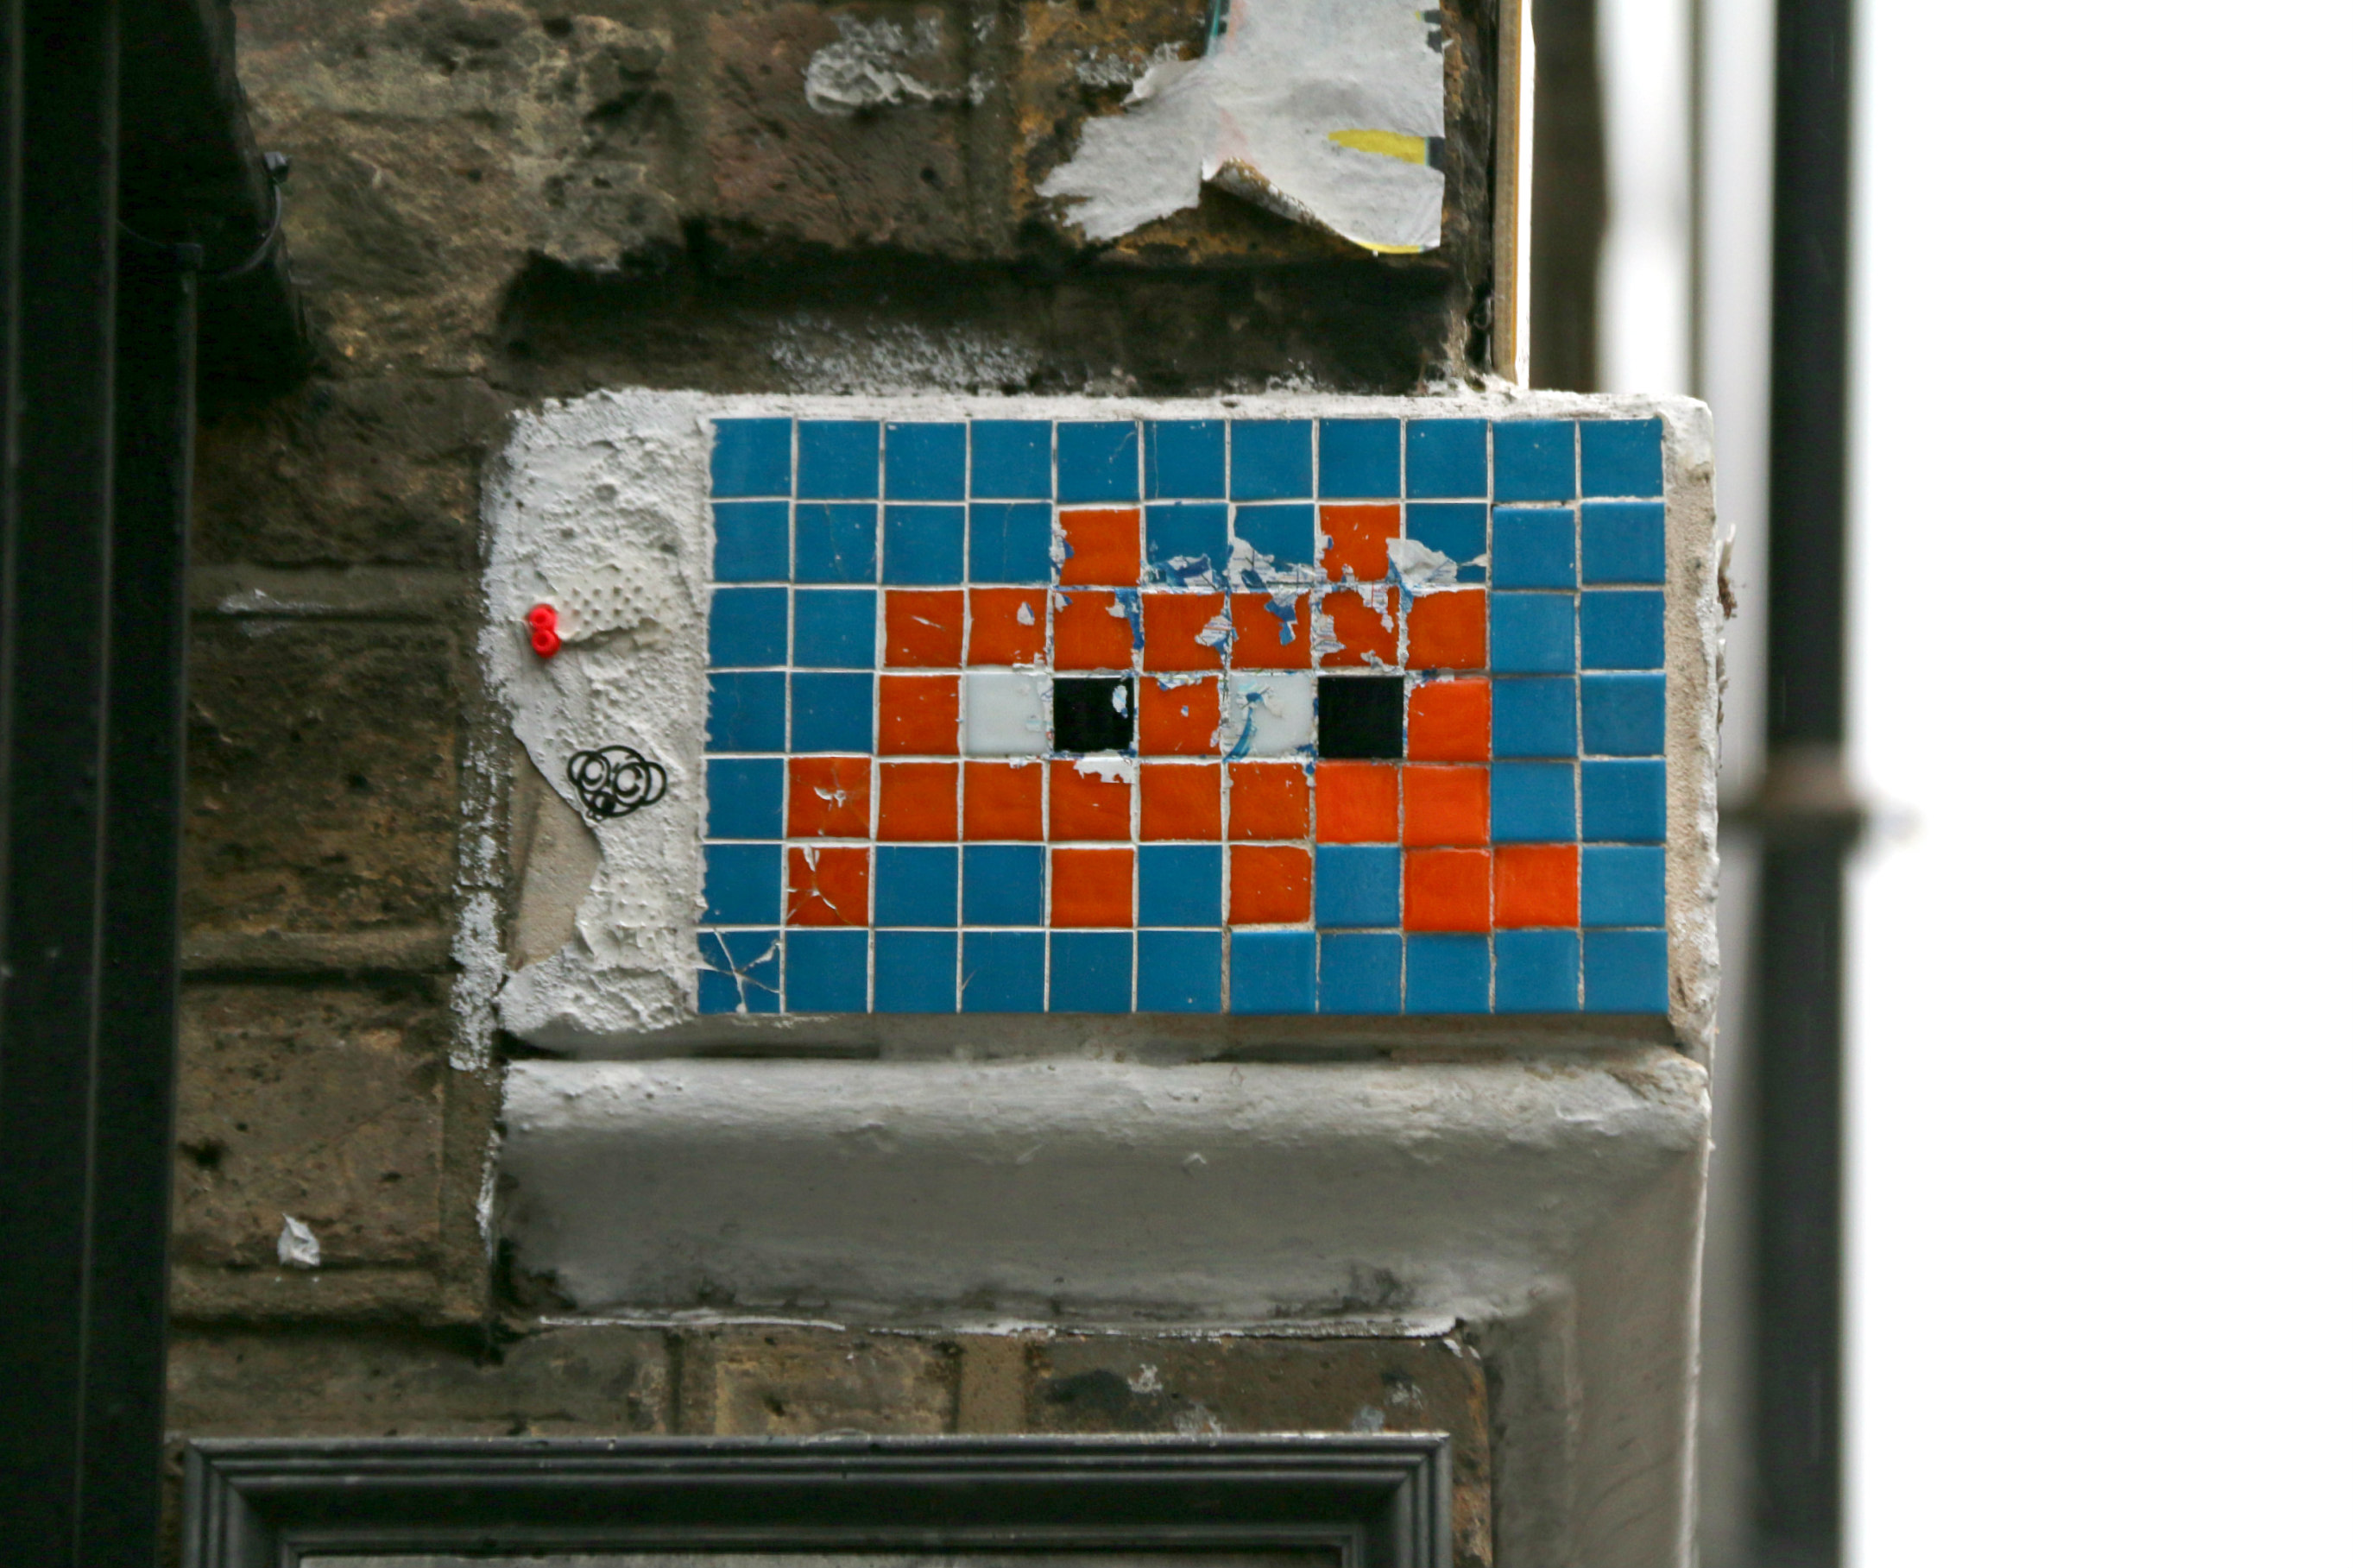 London Shoreditch street art Brick Lane space invader